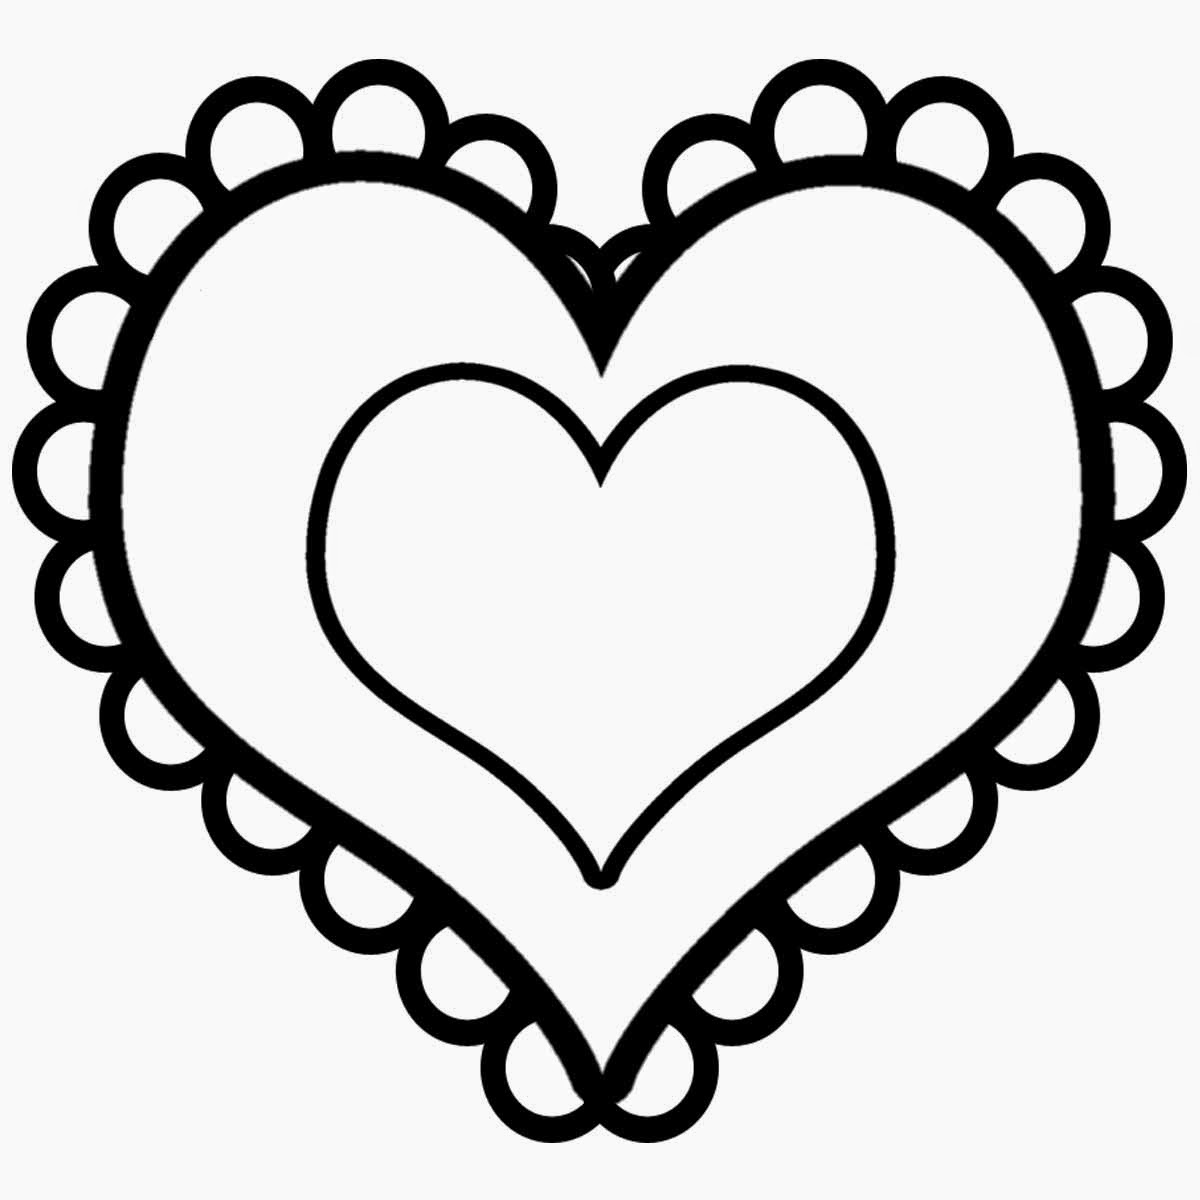 heart clipart coloring page free coloring hearts cliparts download free clip art heart clipart page coloring